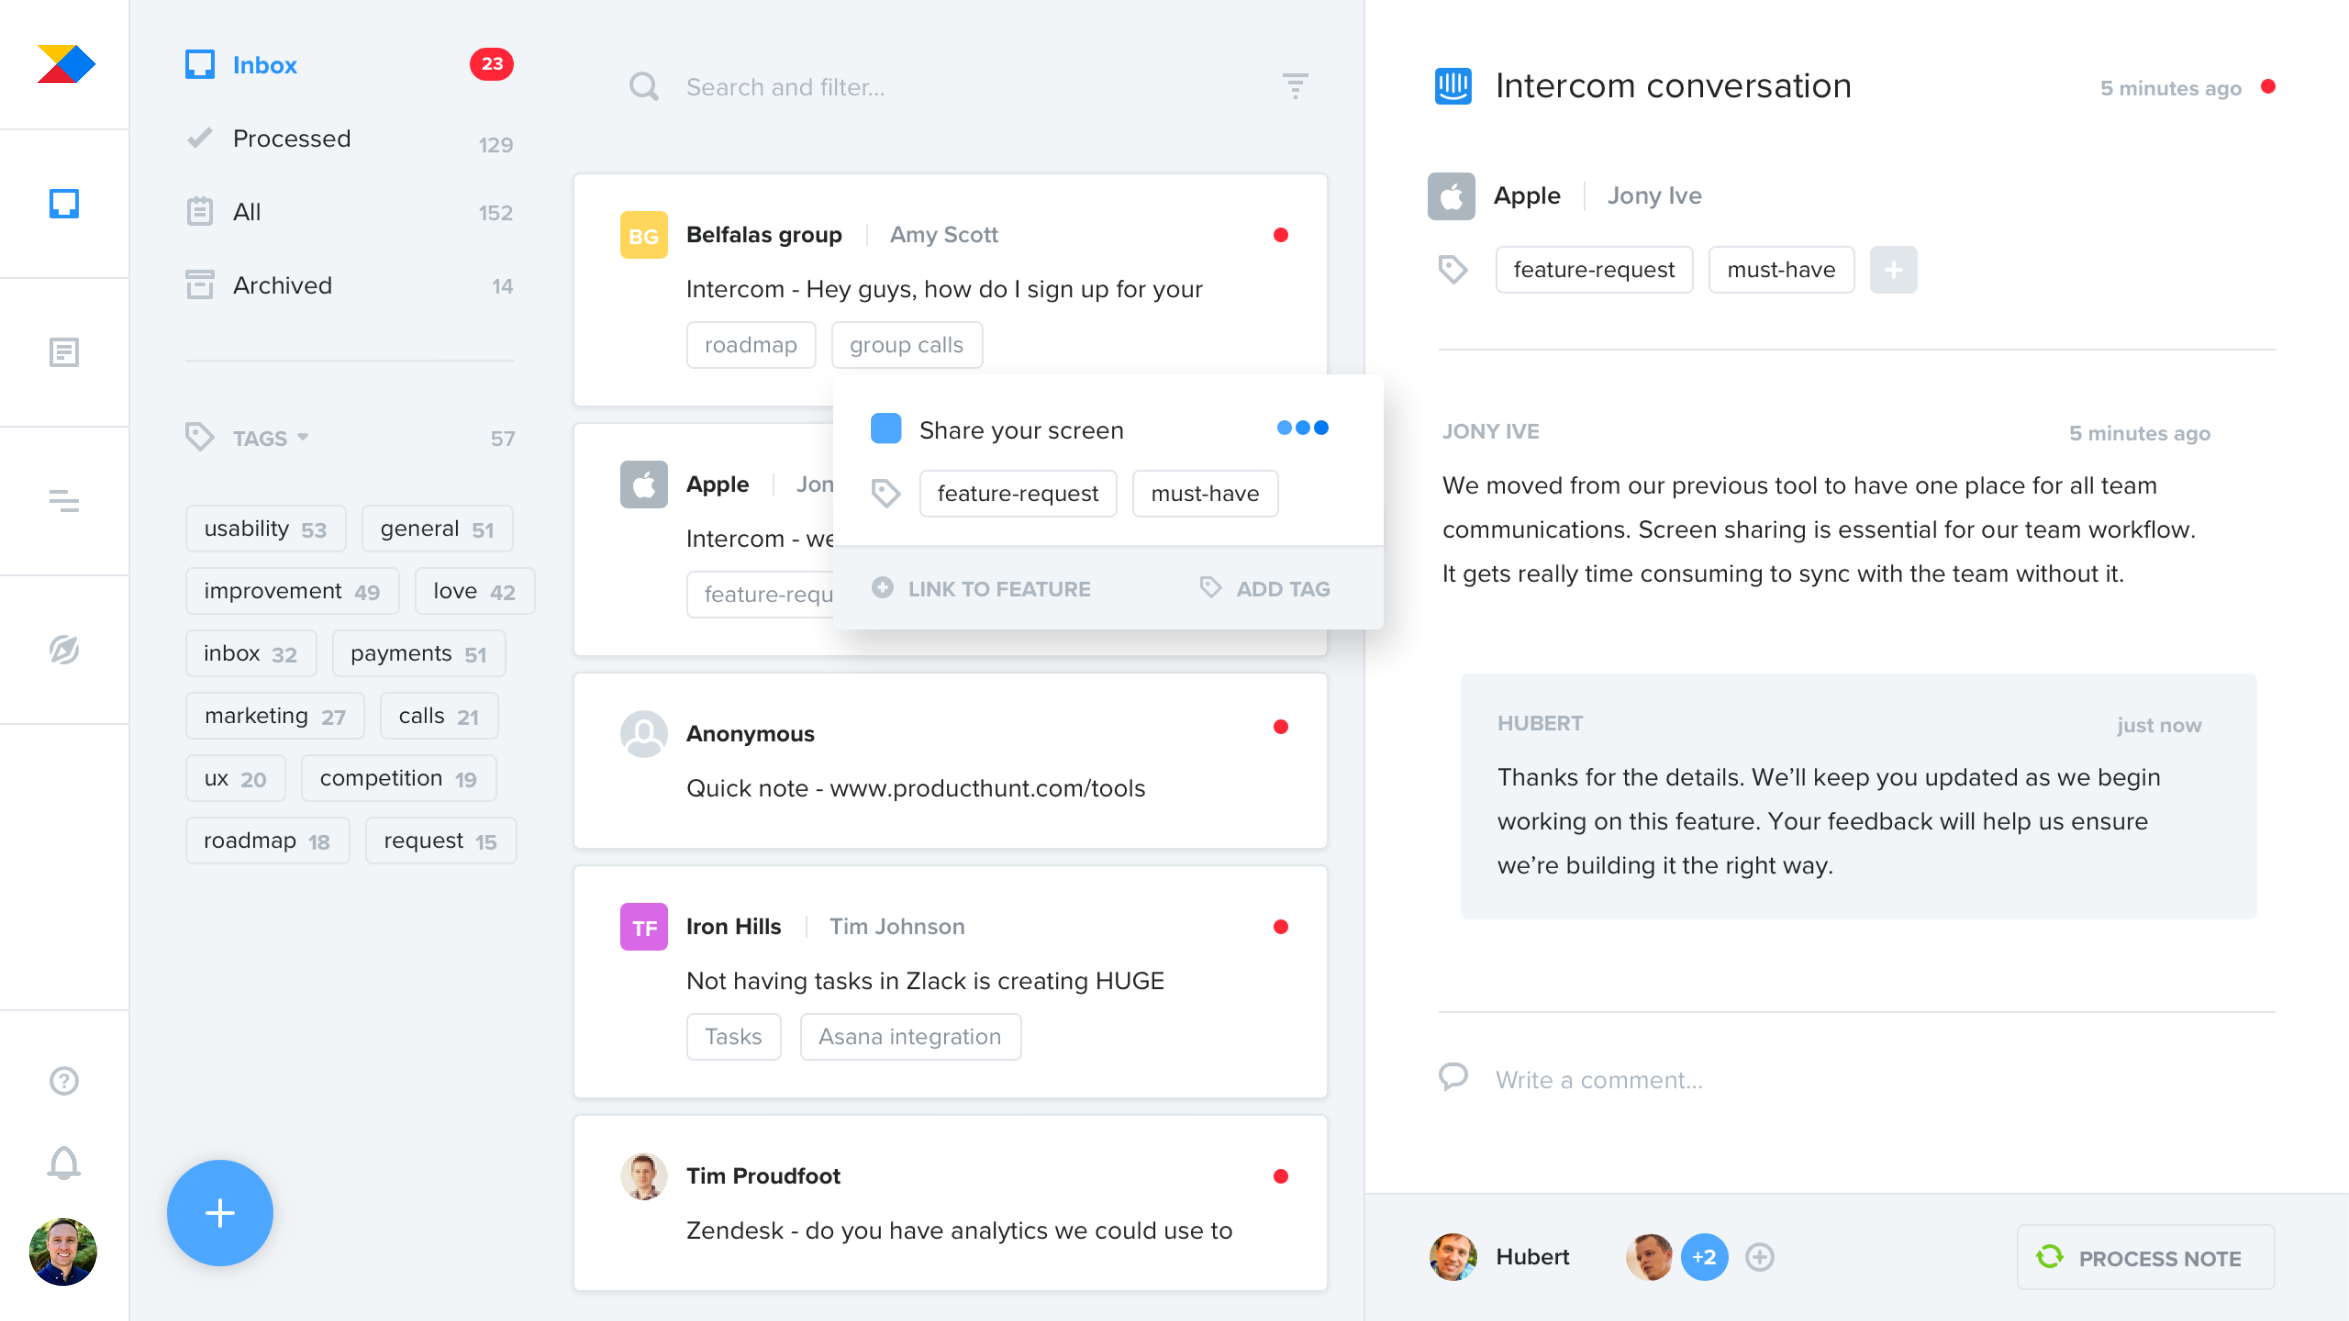 Consolidate product ideas, requests, and feedback from a variety of sources and identify trends around what customers really need